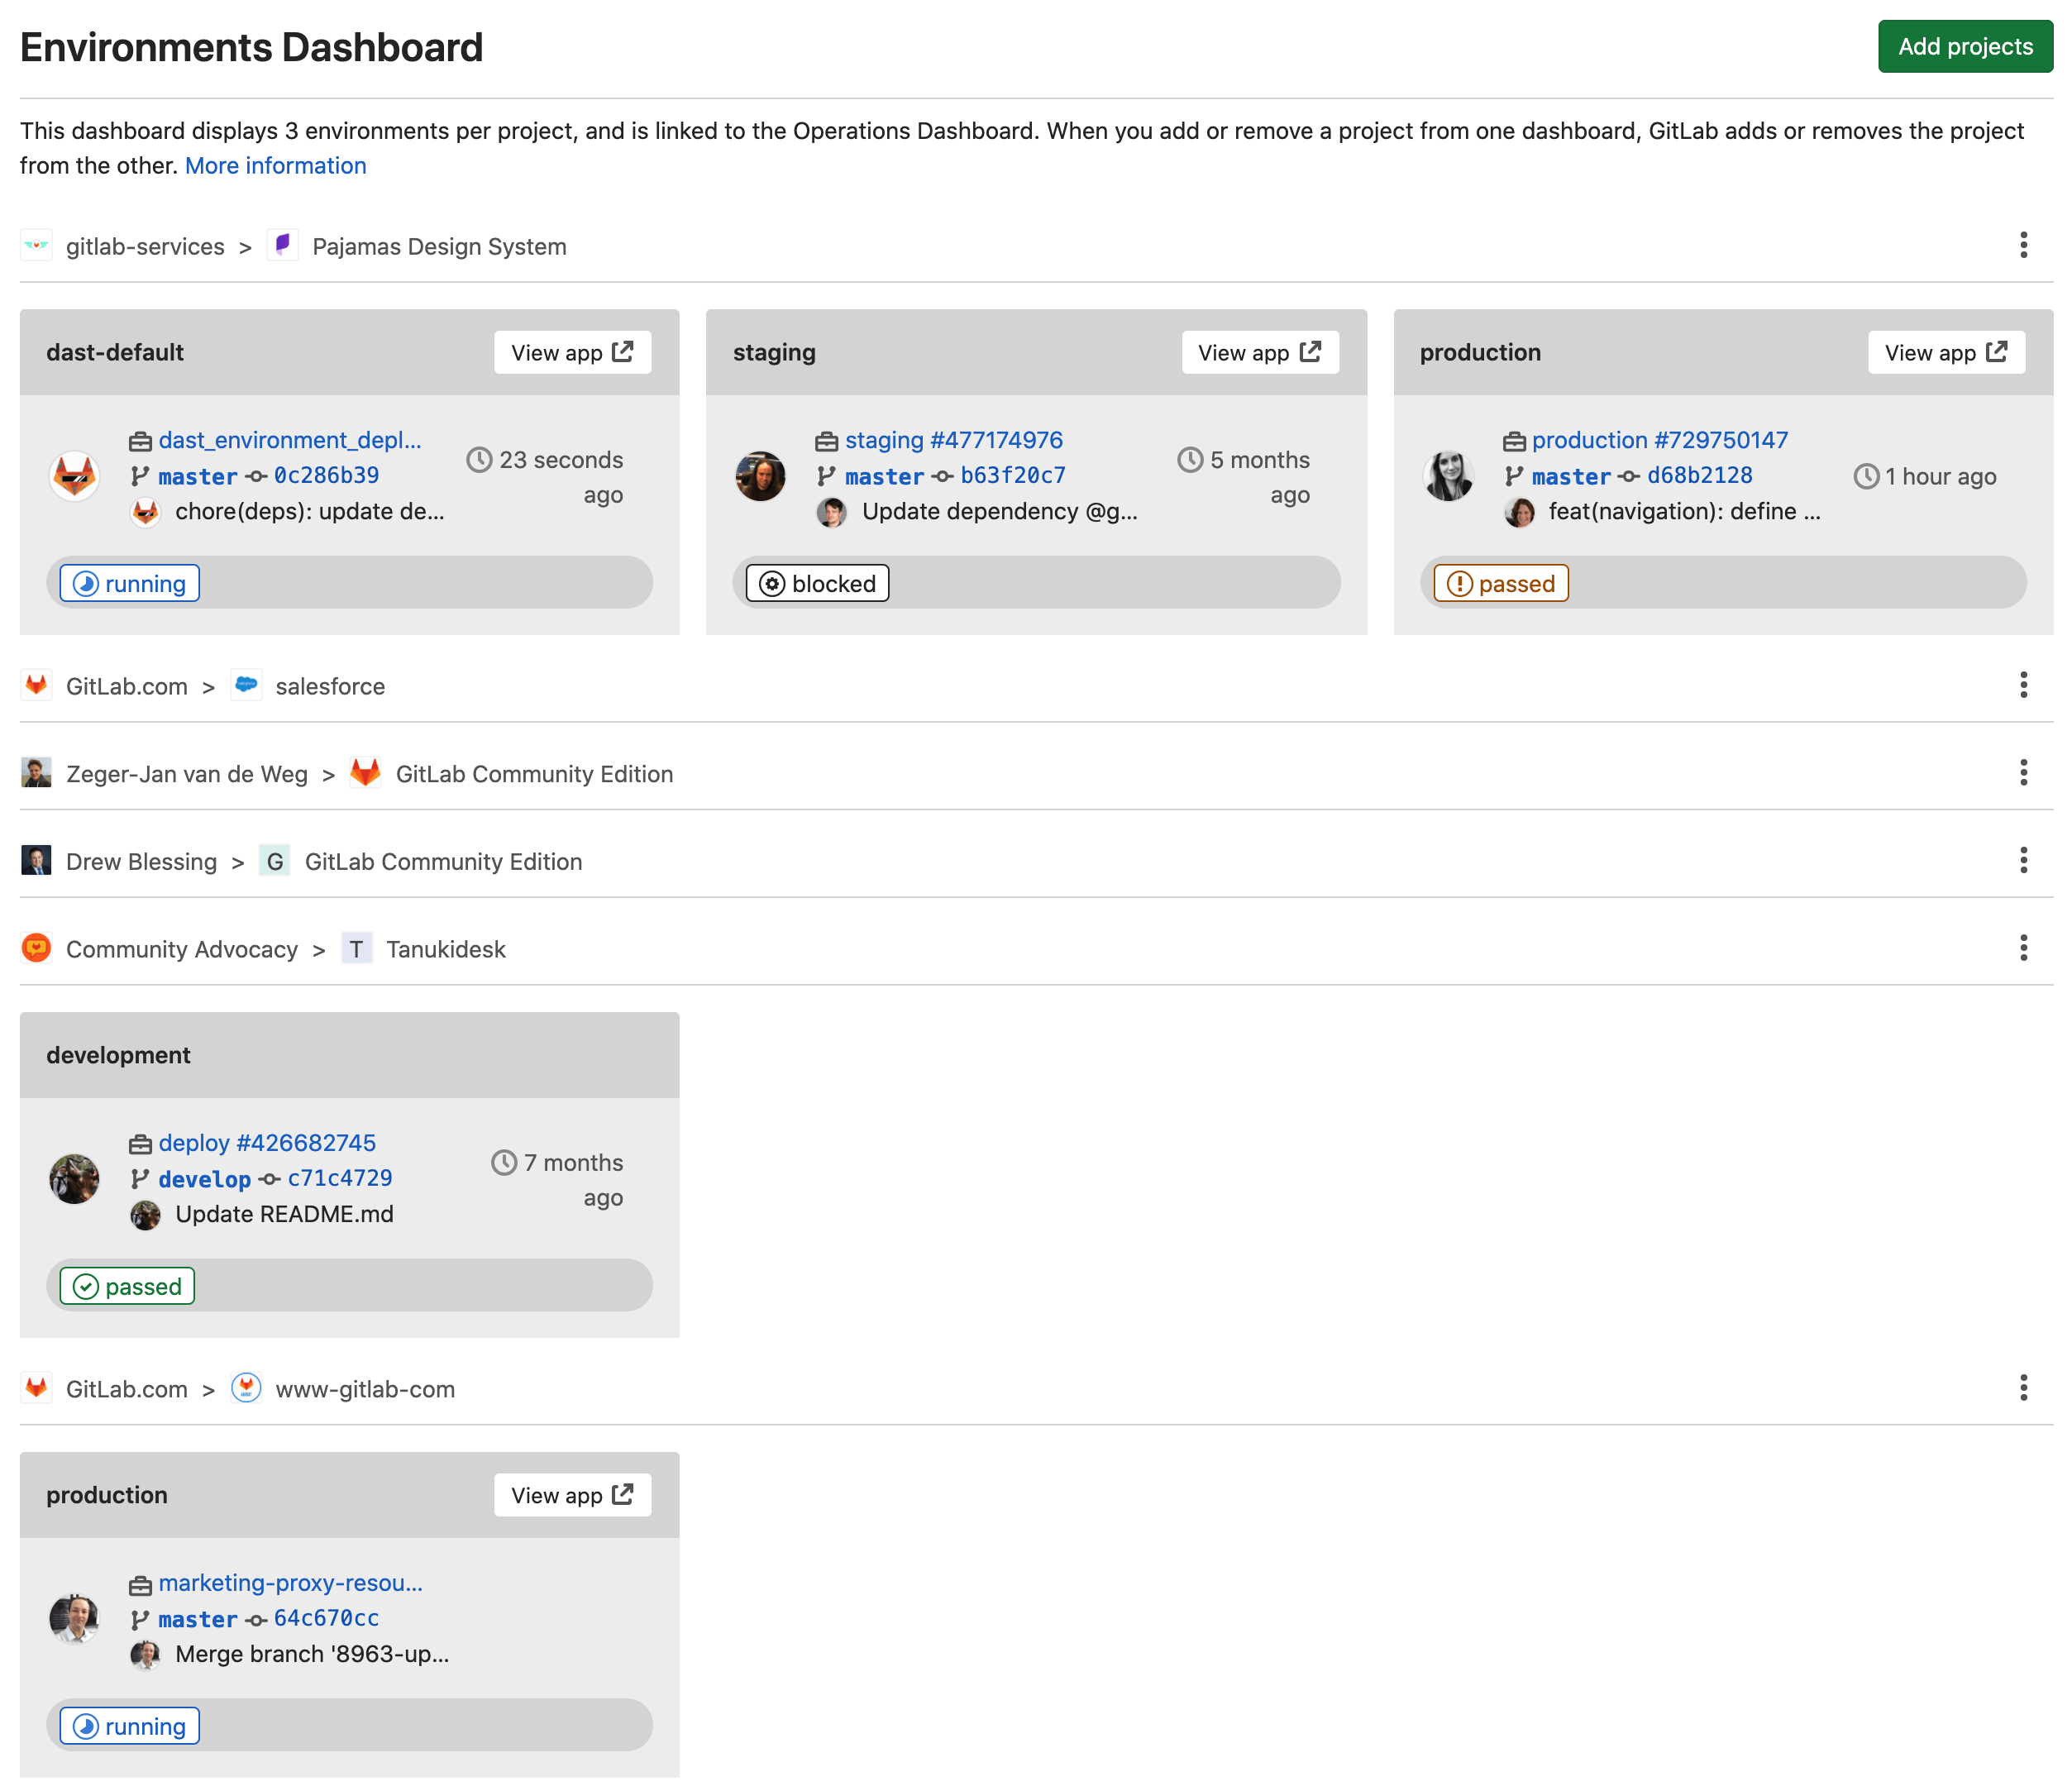 Track environments at scale with the Environments Dashboard